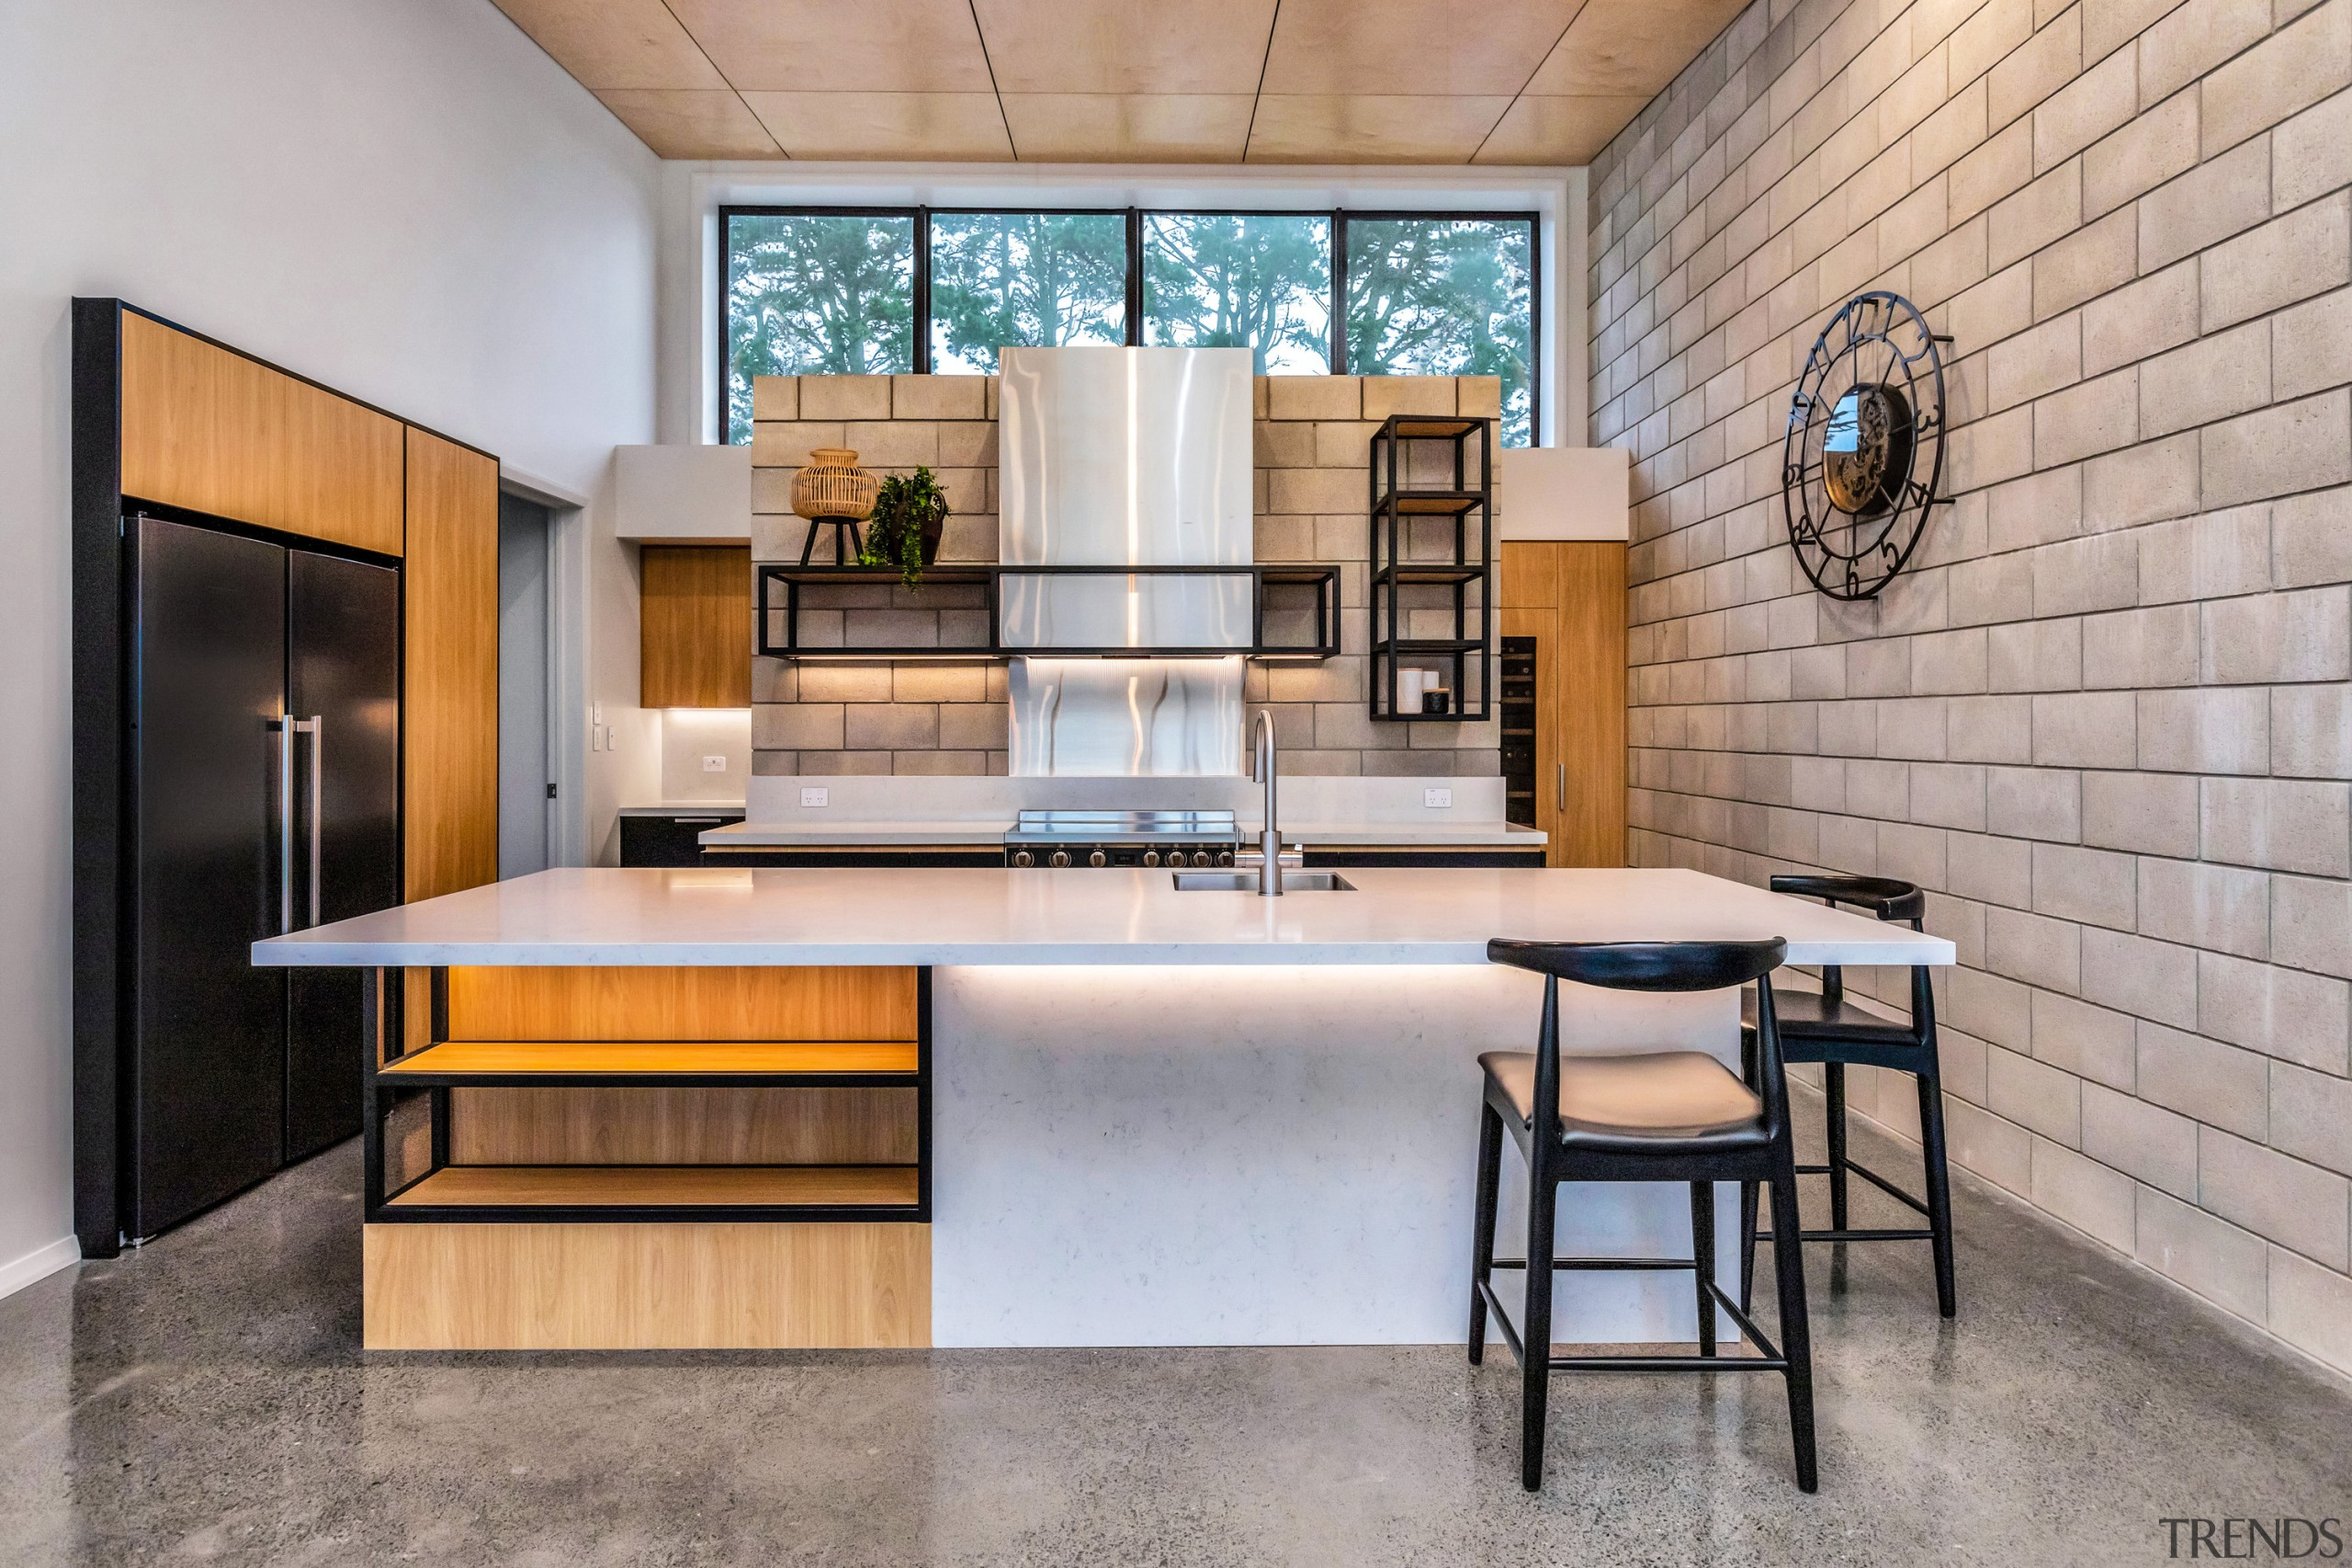 A cinder block wall separating the kitchen and